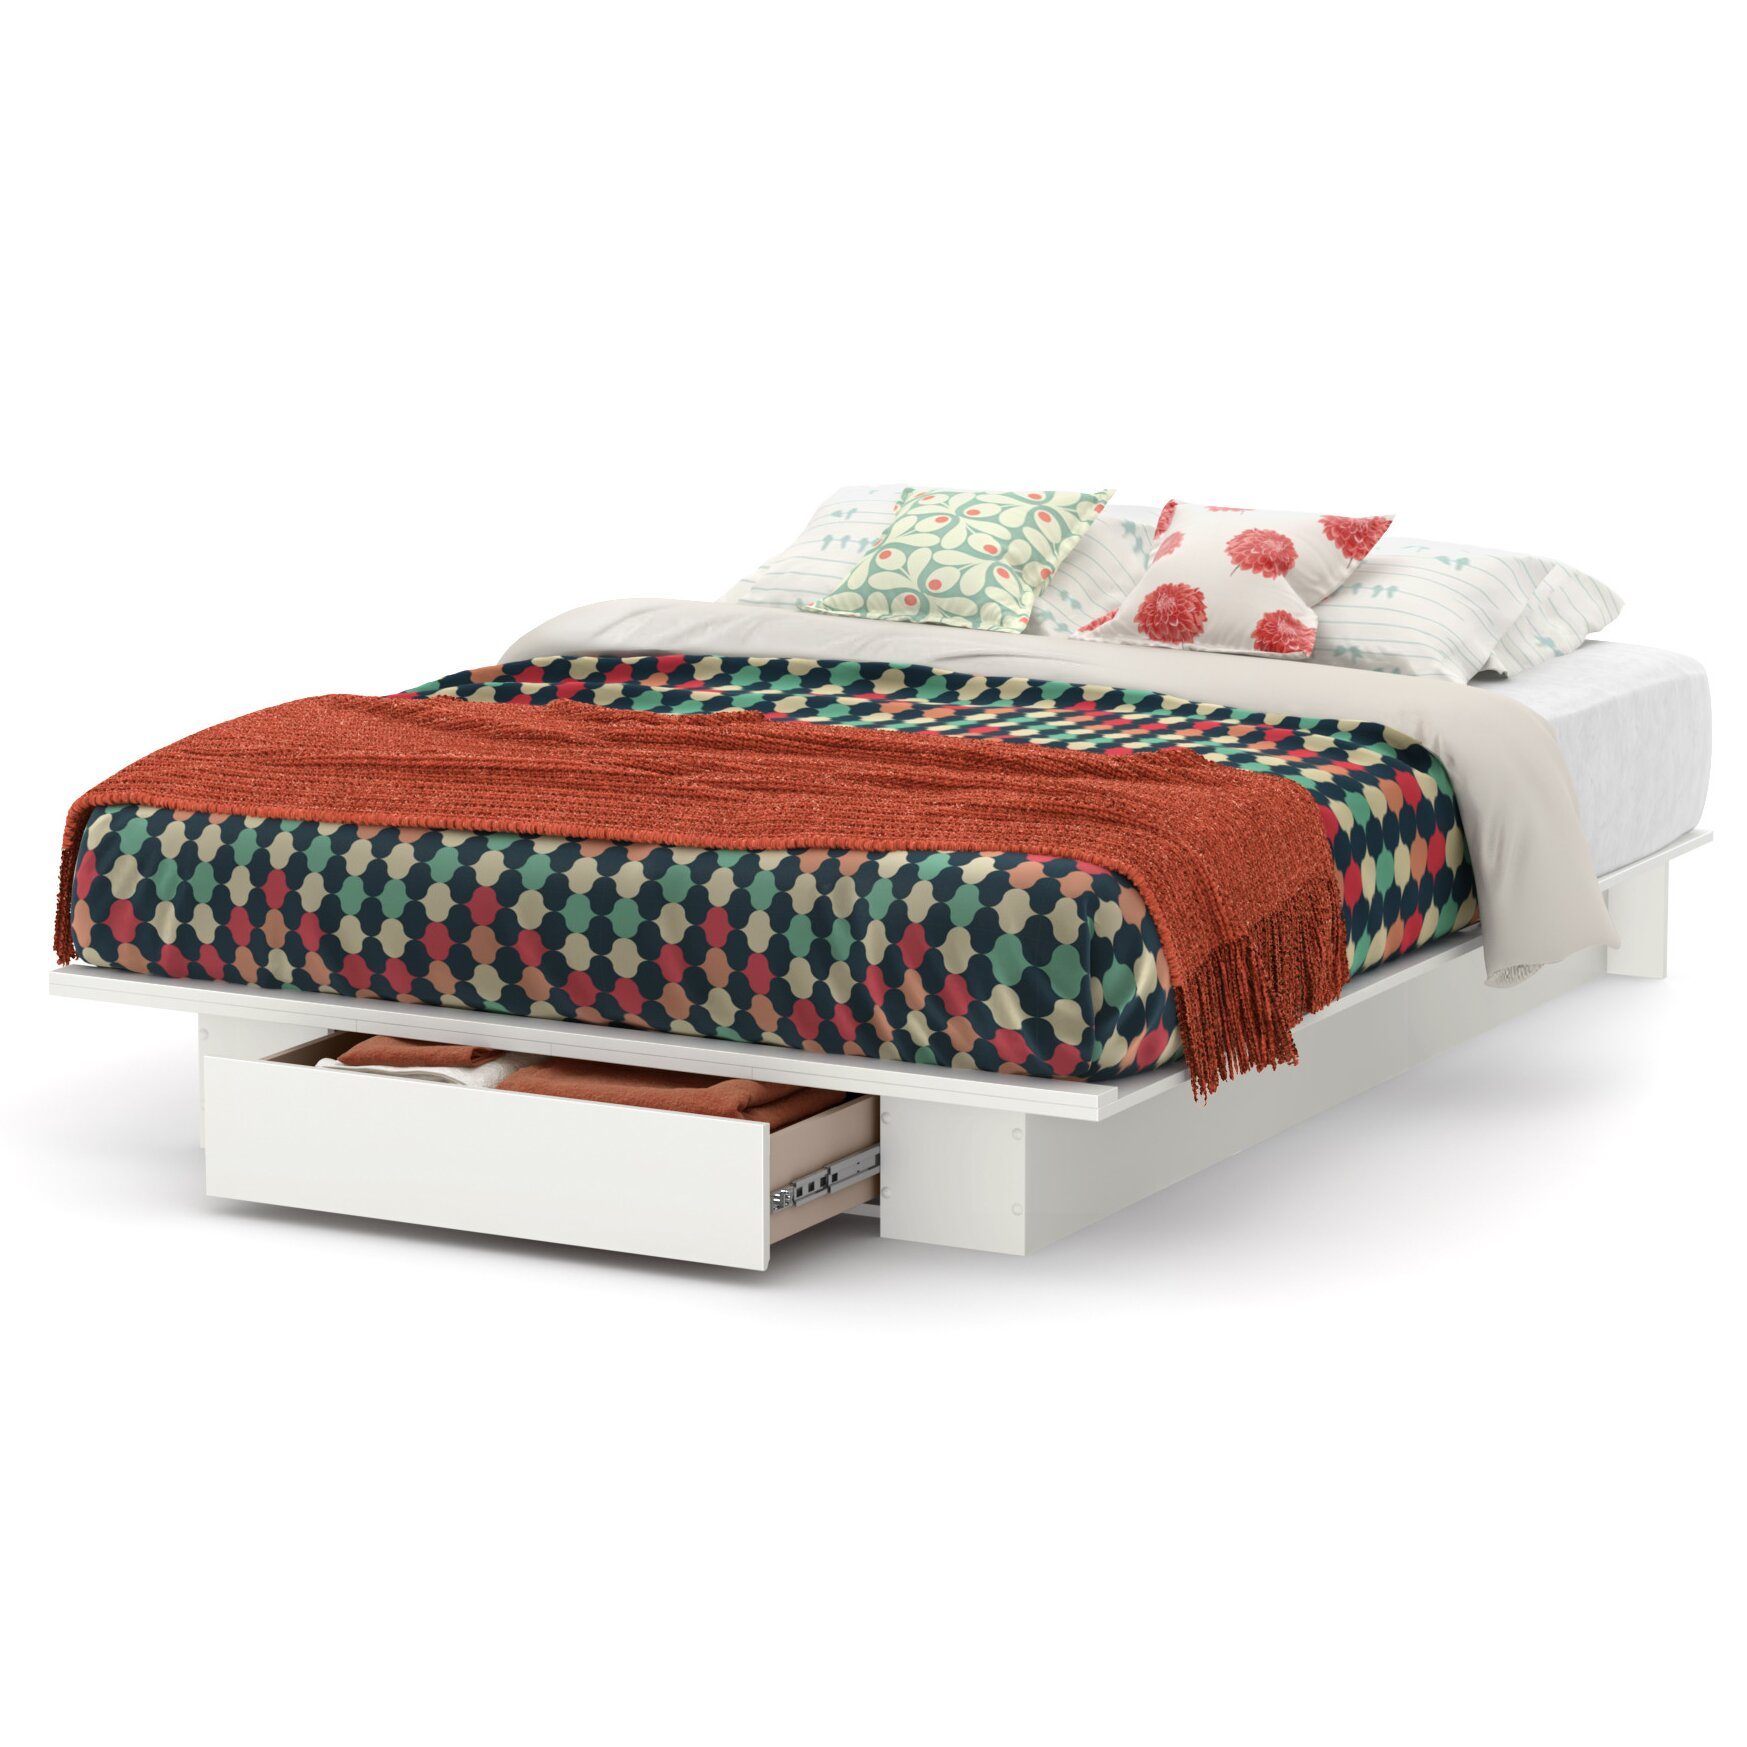 south shore holland storage platform bed